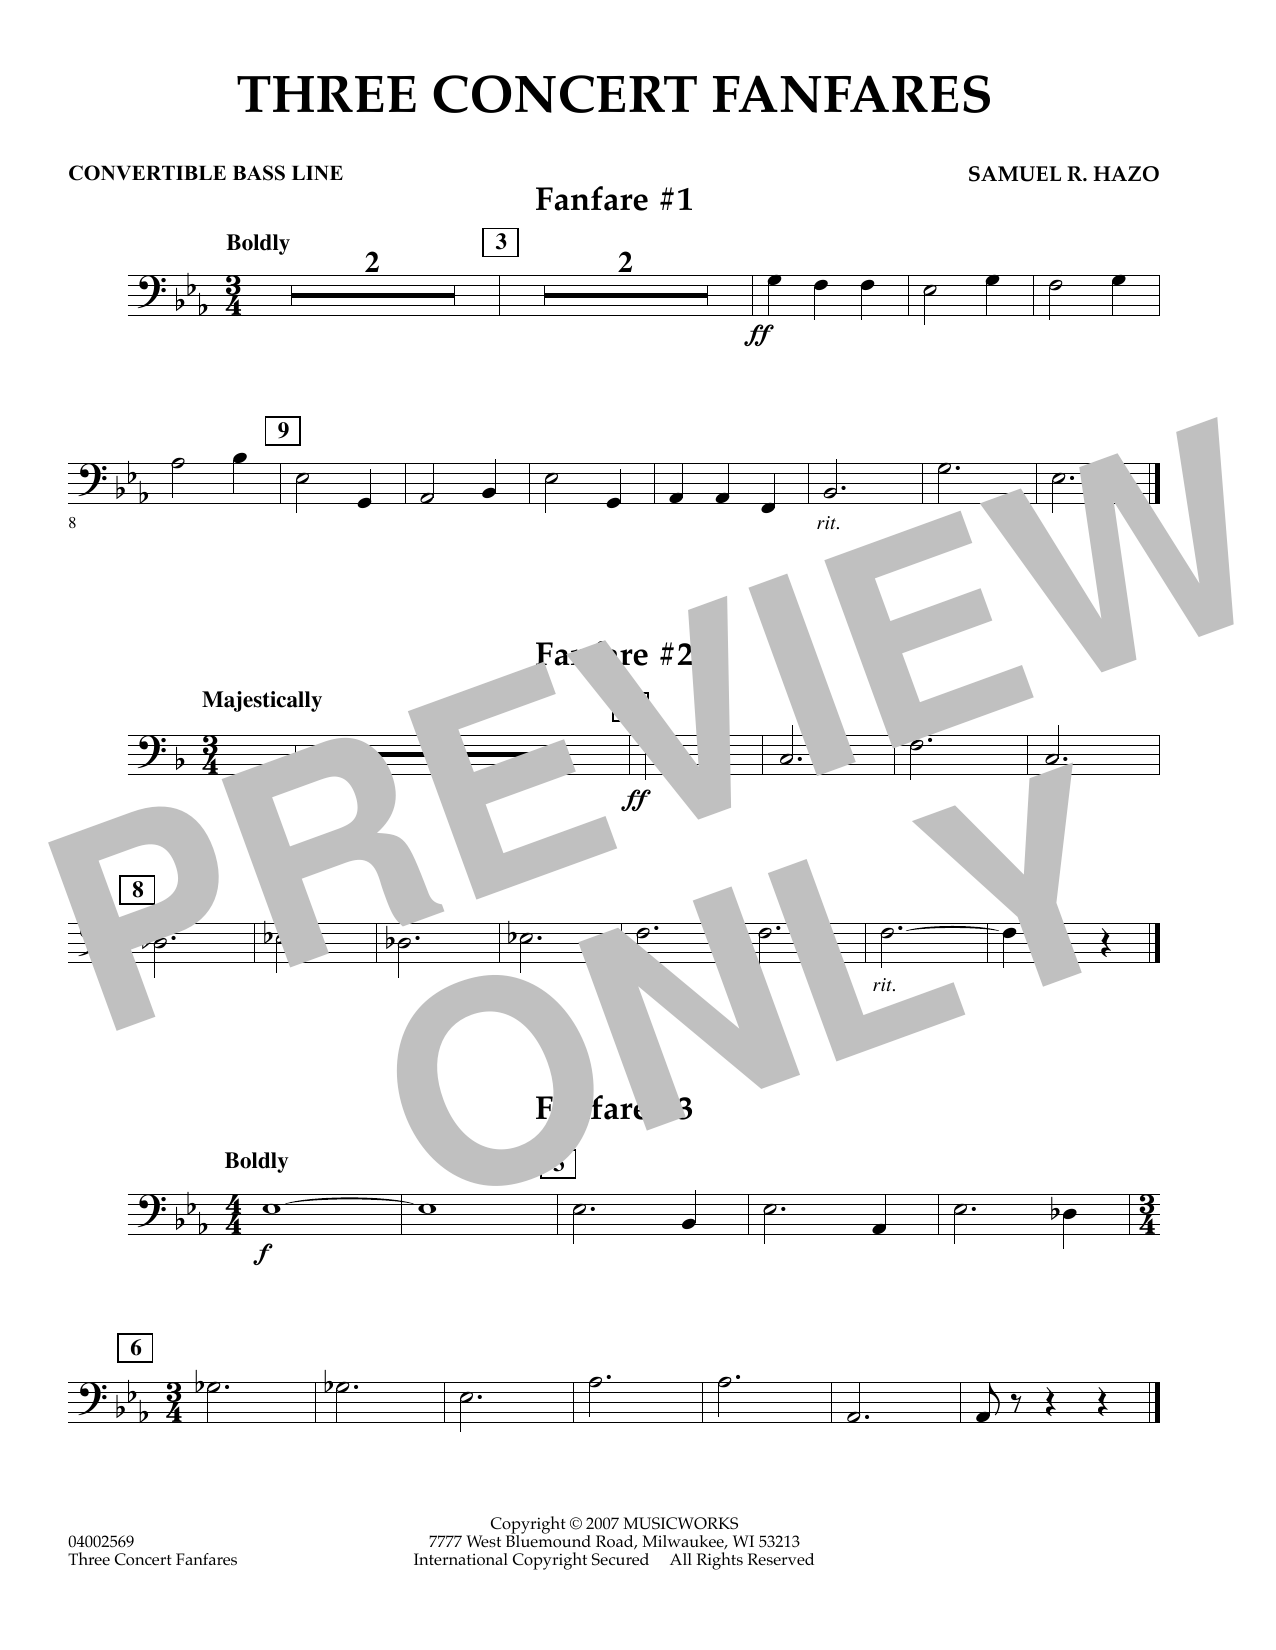 Samuel R. Hazo Three Concert Fanfares - Convertible Bass Line sheet music preview music notes and score for Concert Band including 1 page(s)